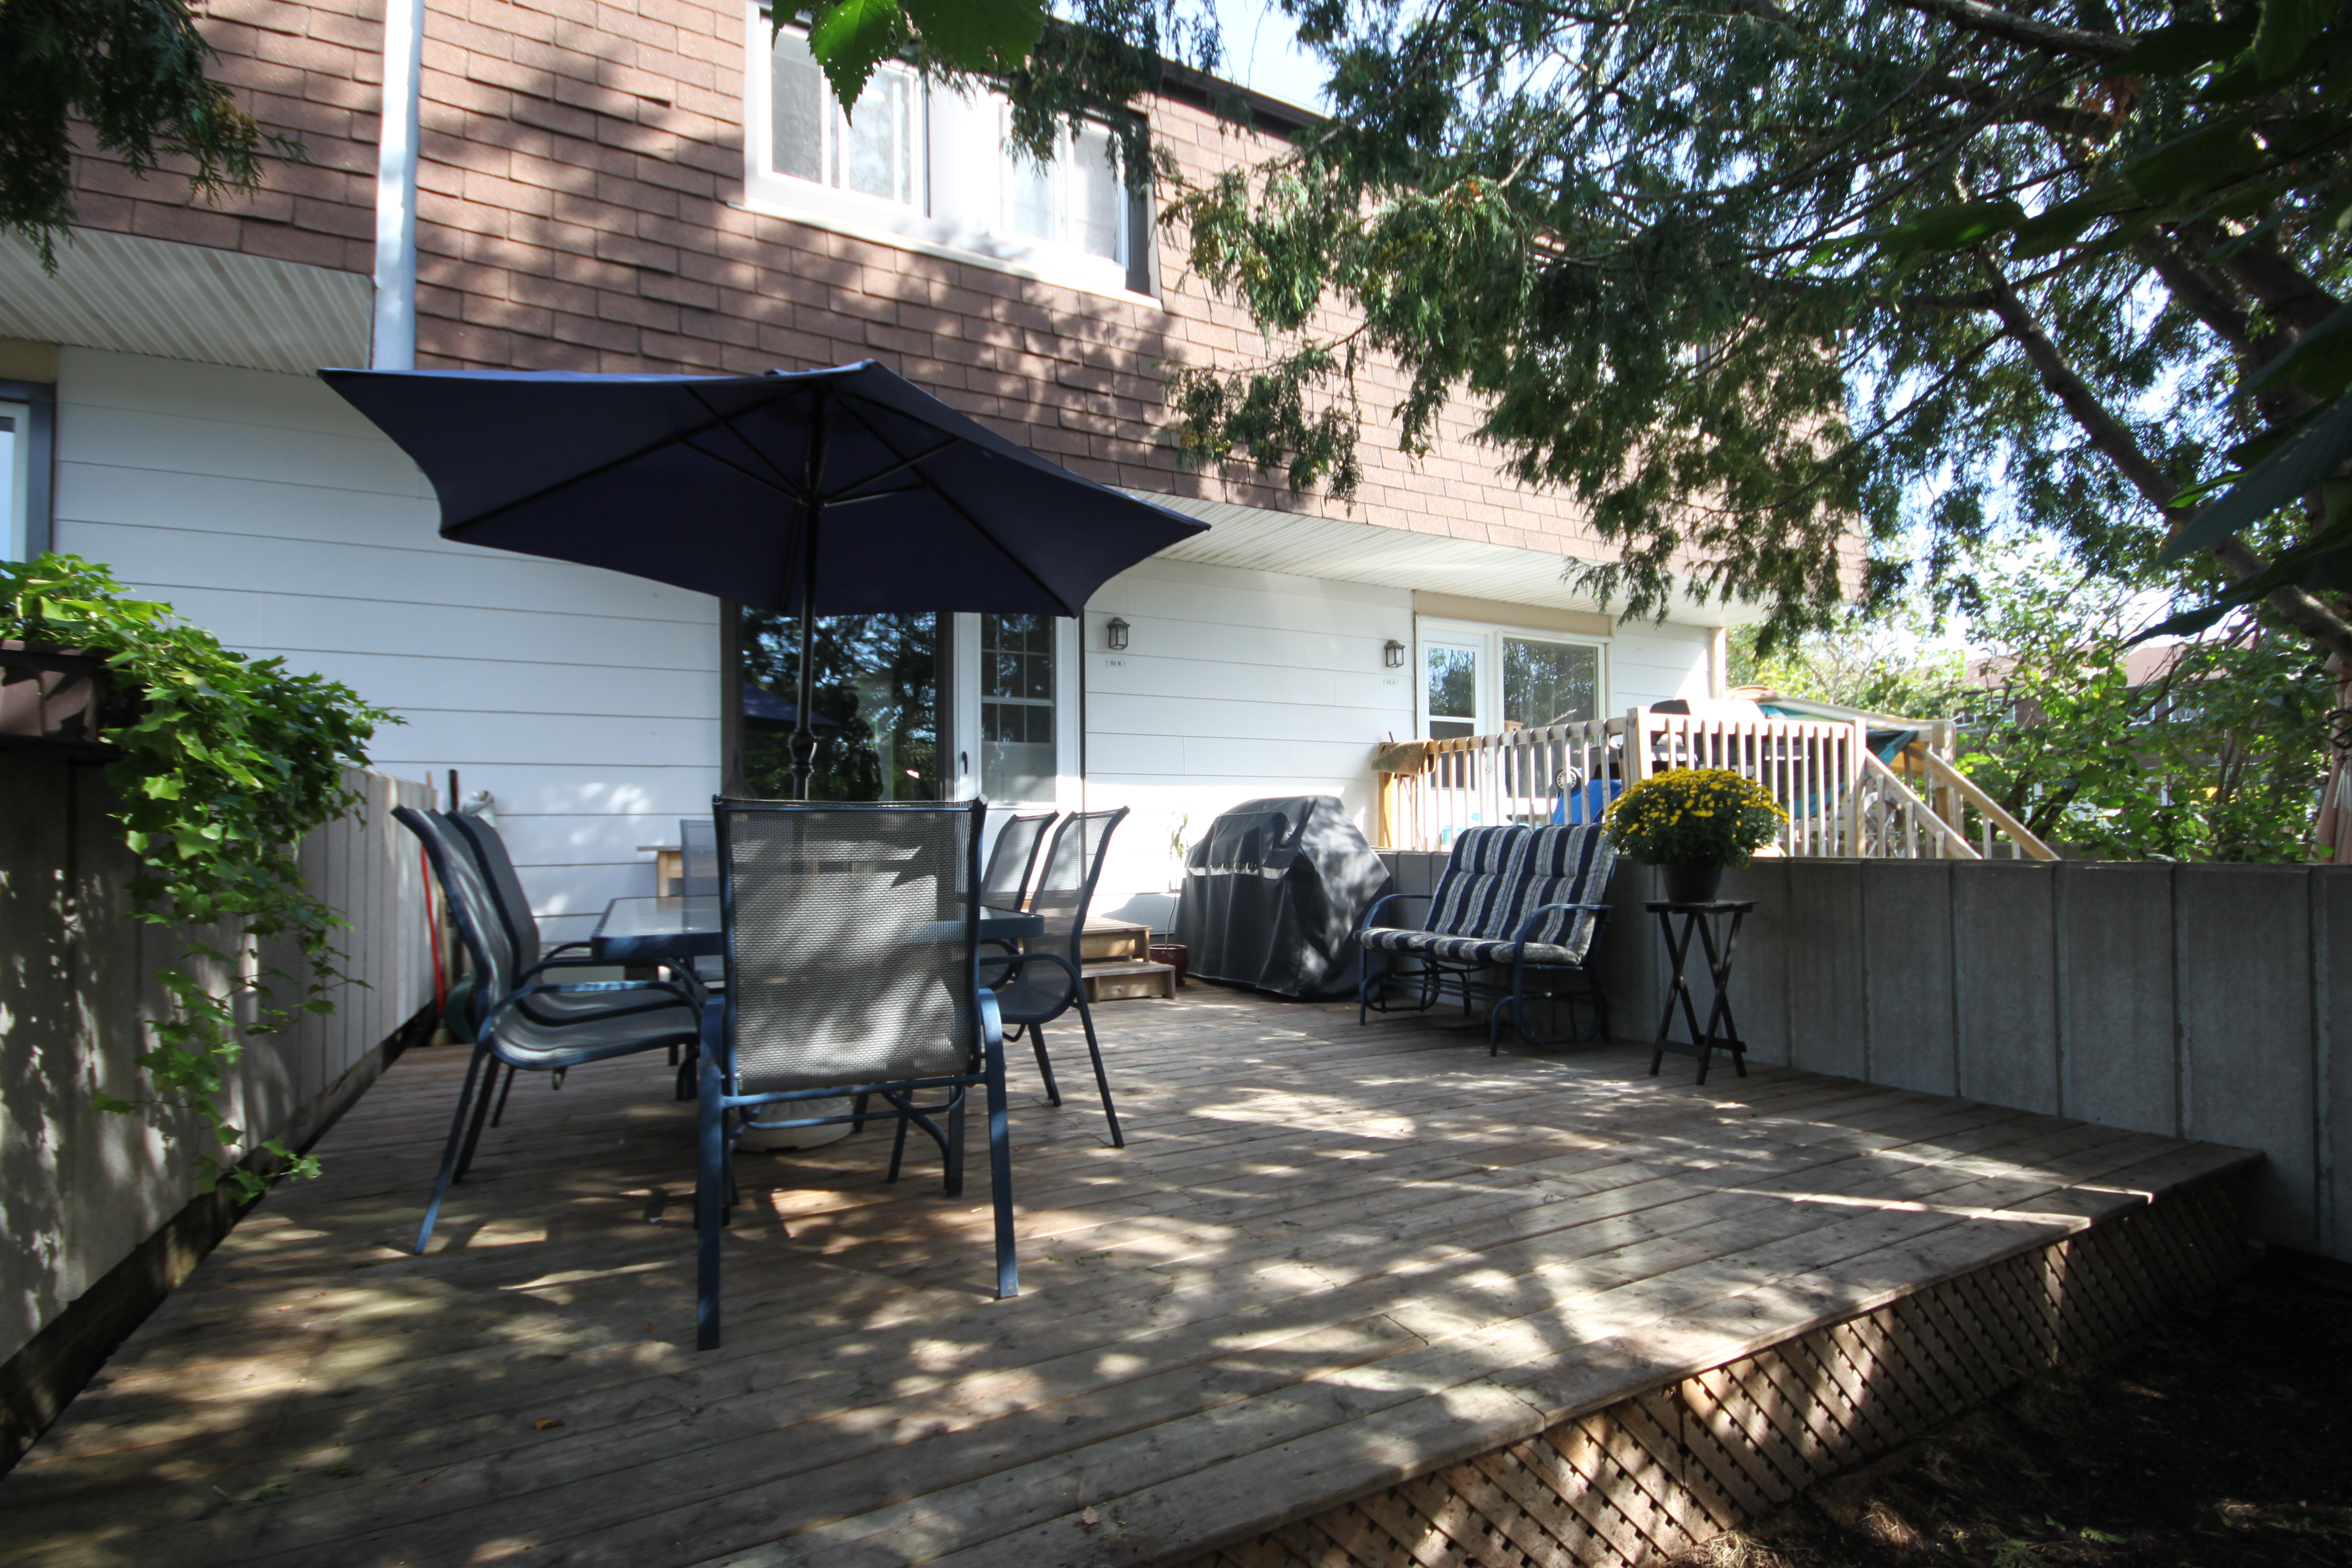 Amazing back patio with planters, lots of foliage for added privacy, and great garden area.  Perfect spot for summer entertaining.